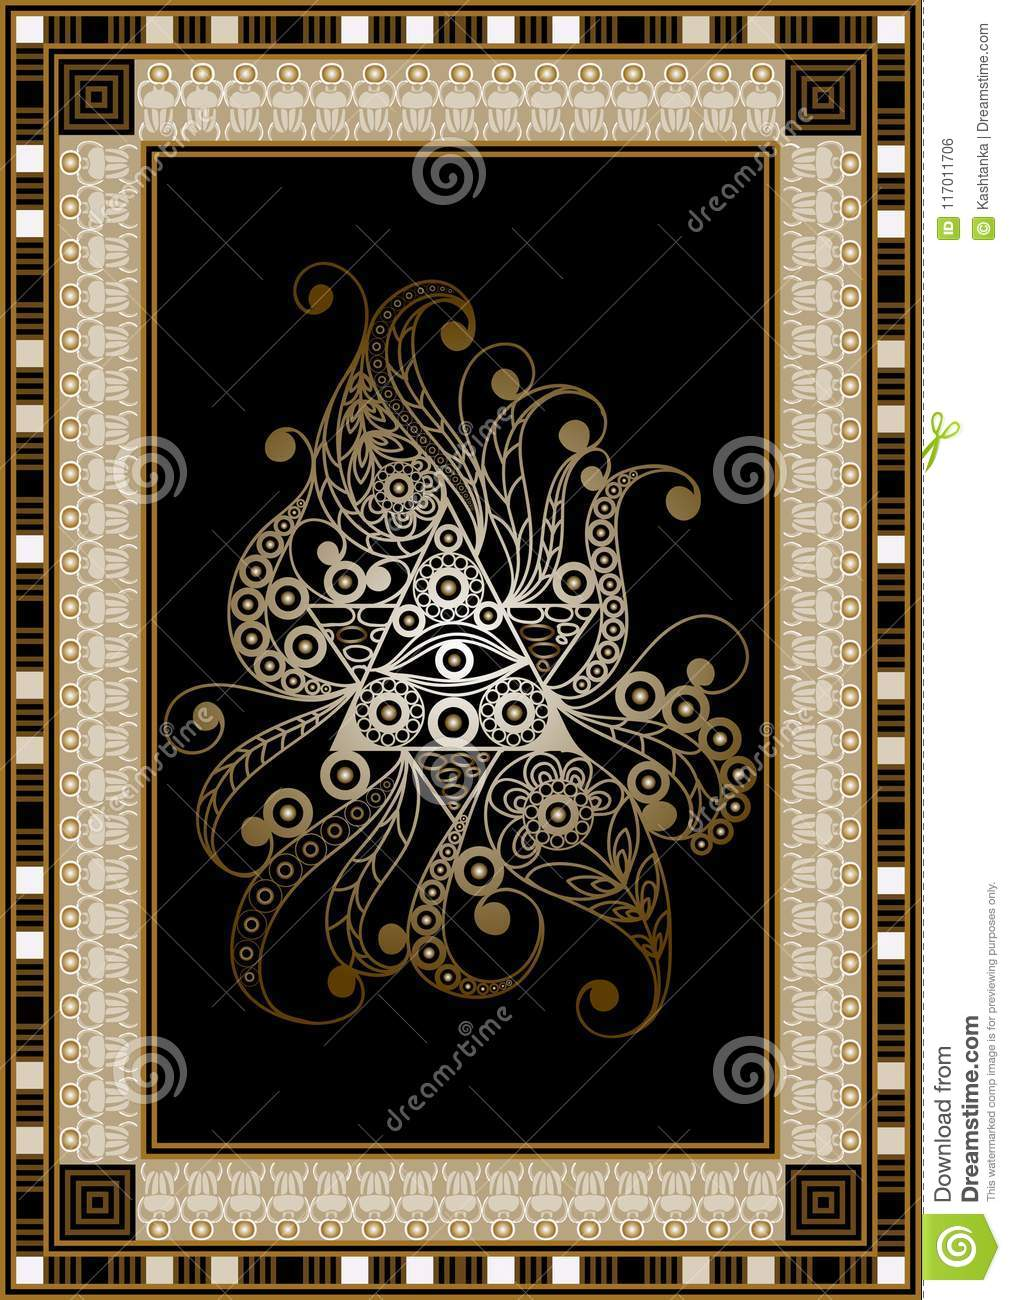 Graphical Illustration With Occult Symbol 9 Stock Vector